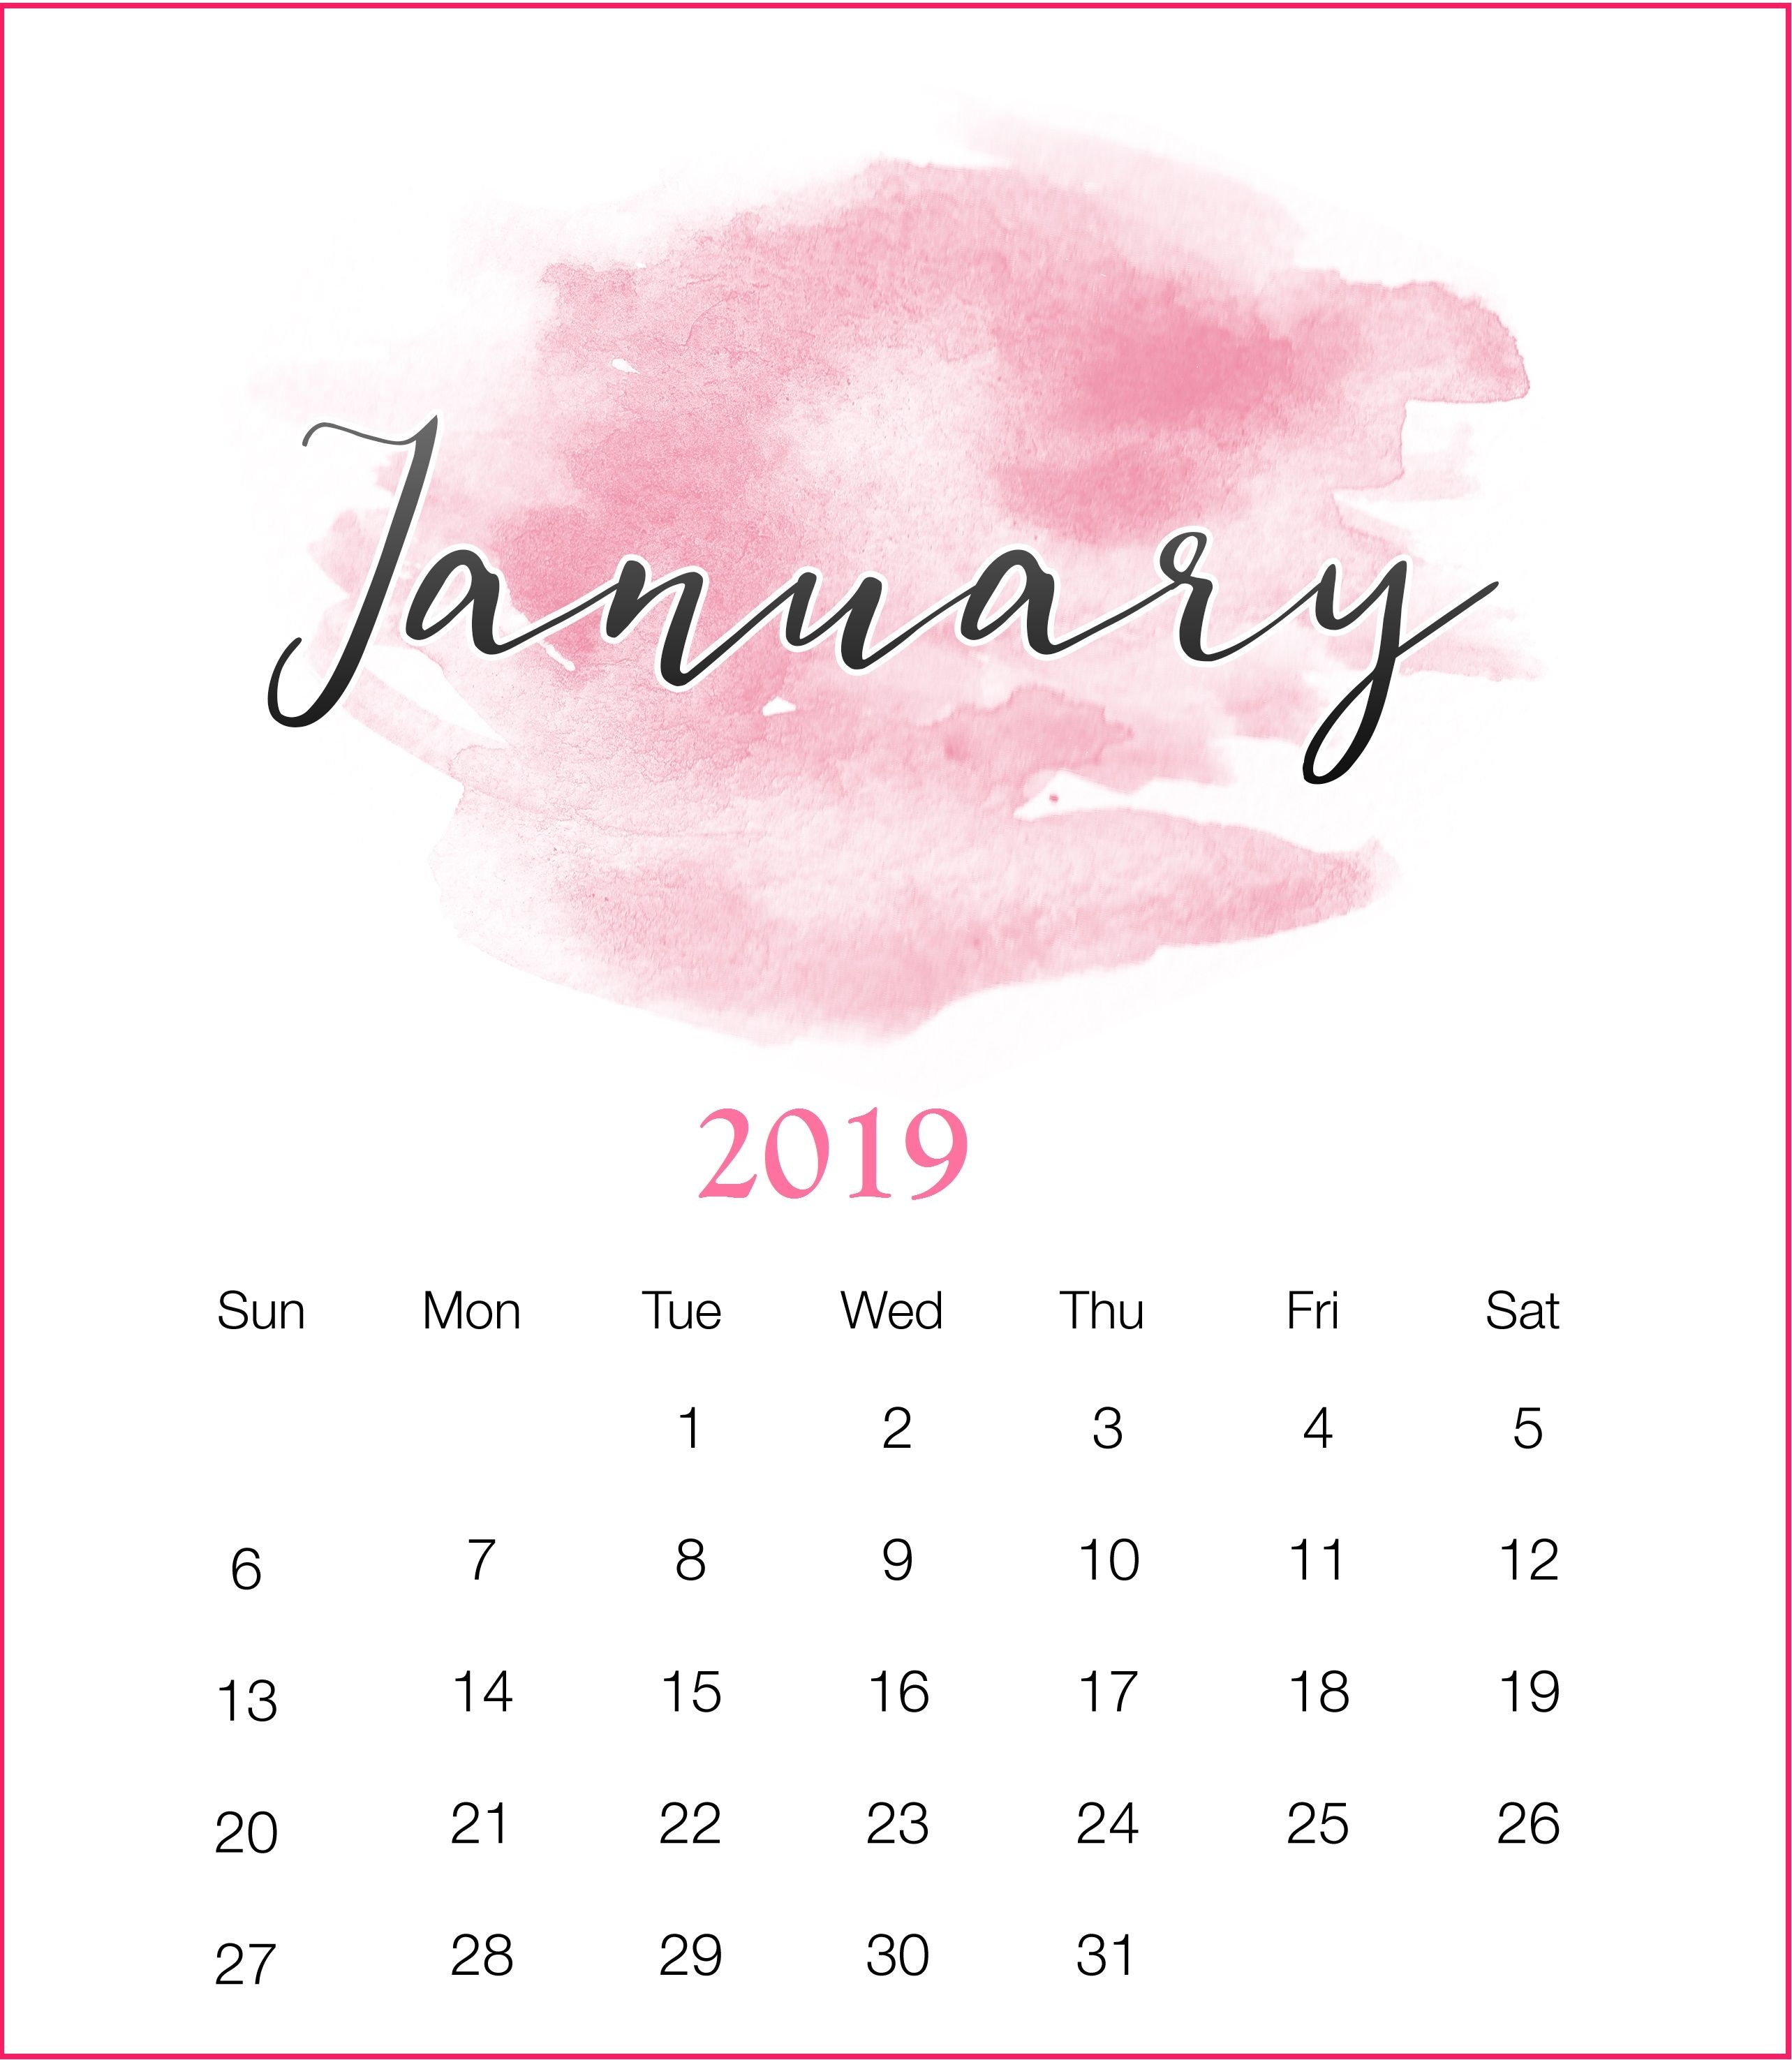 watercolor 2019 january printable calendar january2019 watercolor::January 2019 Monthly Calendar